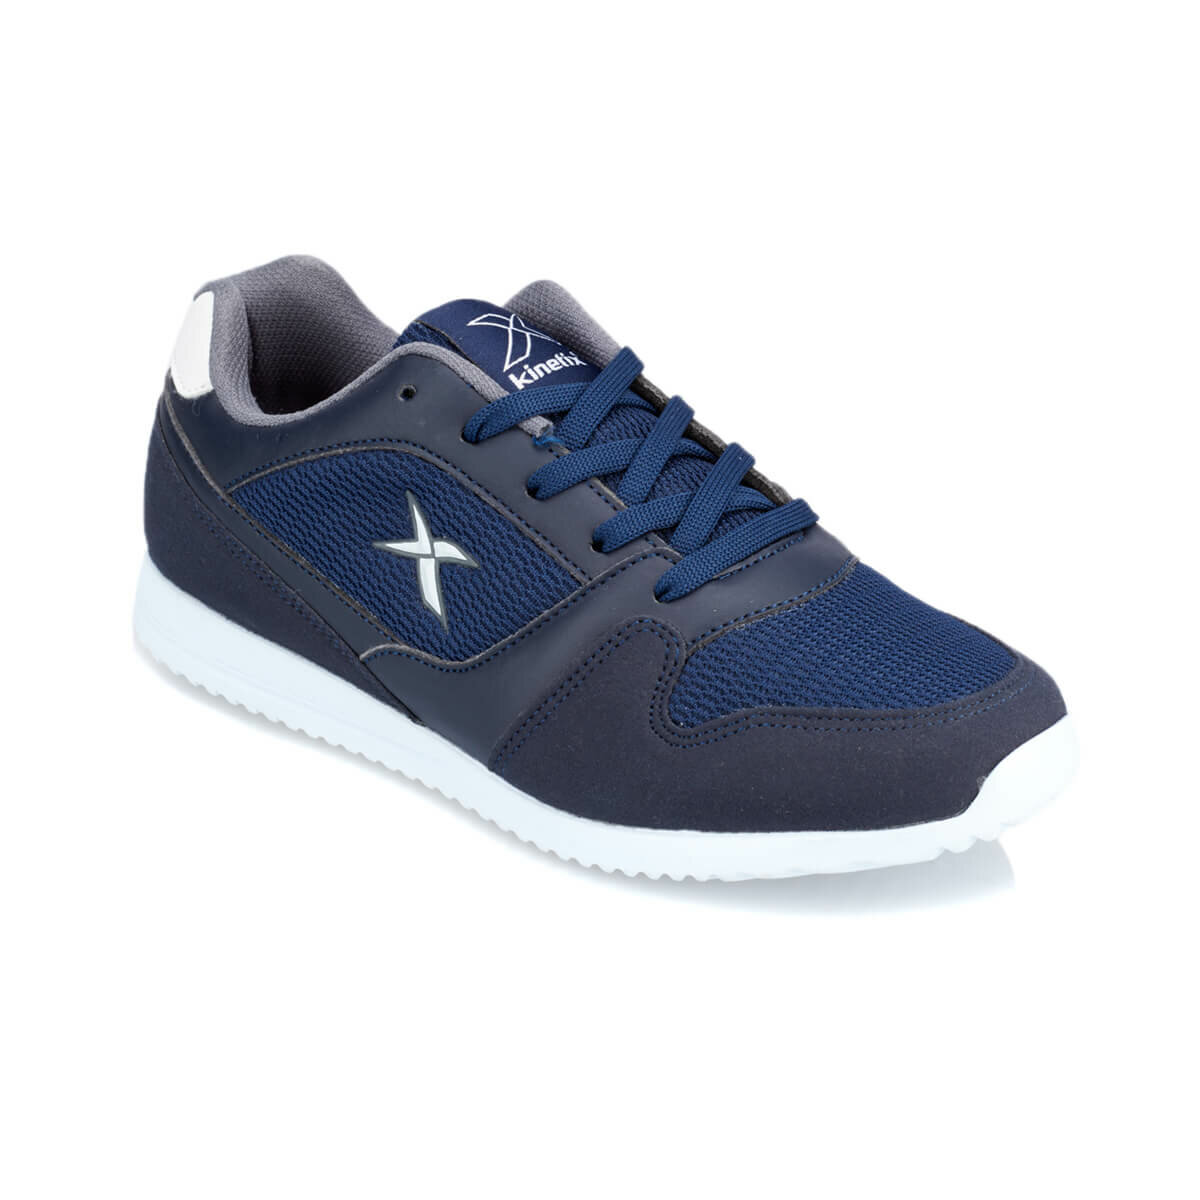 FLO ODELL Navy Blue Women 'S Sneaker Shoes KINETIX